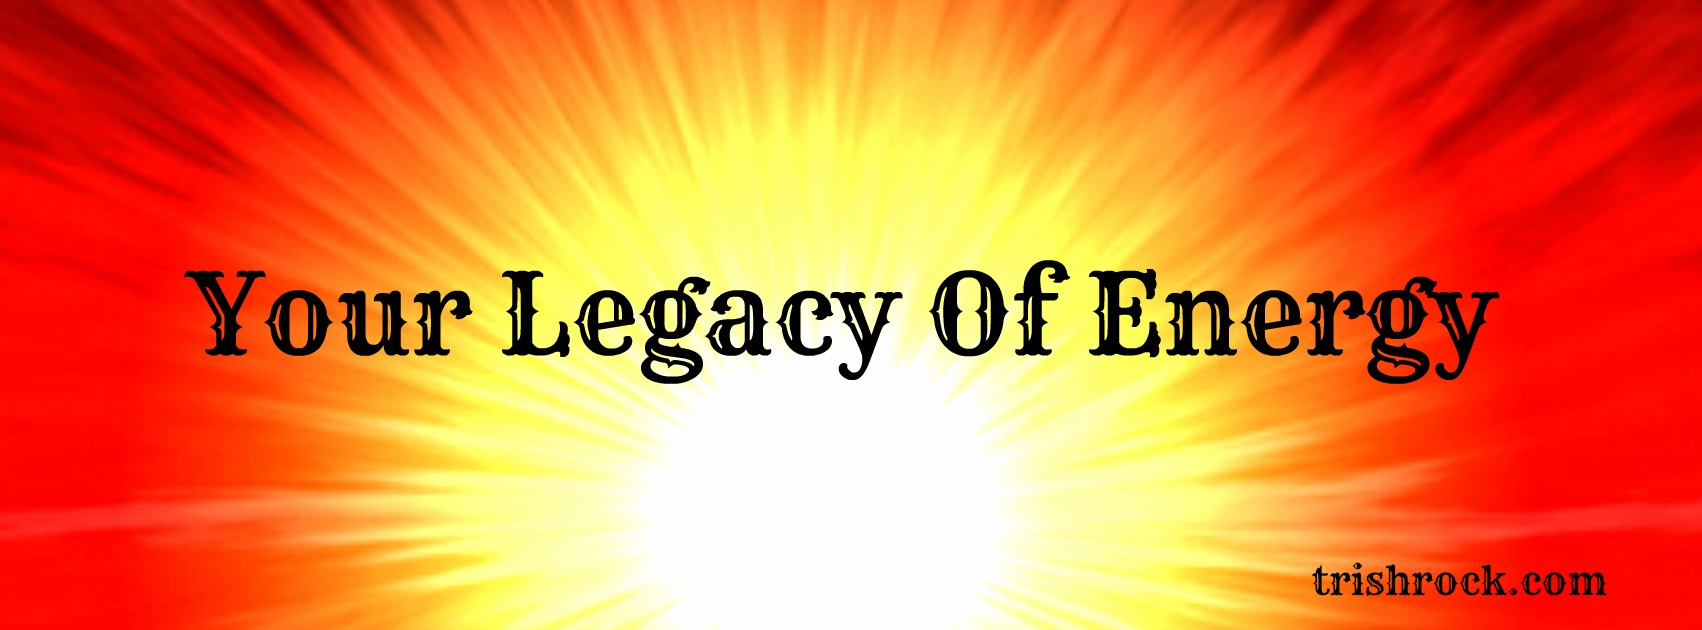 Your Legacy of Energy